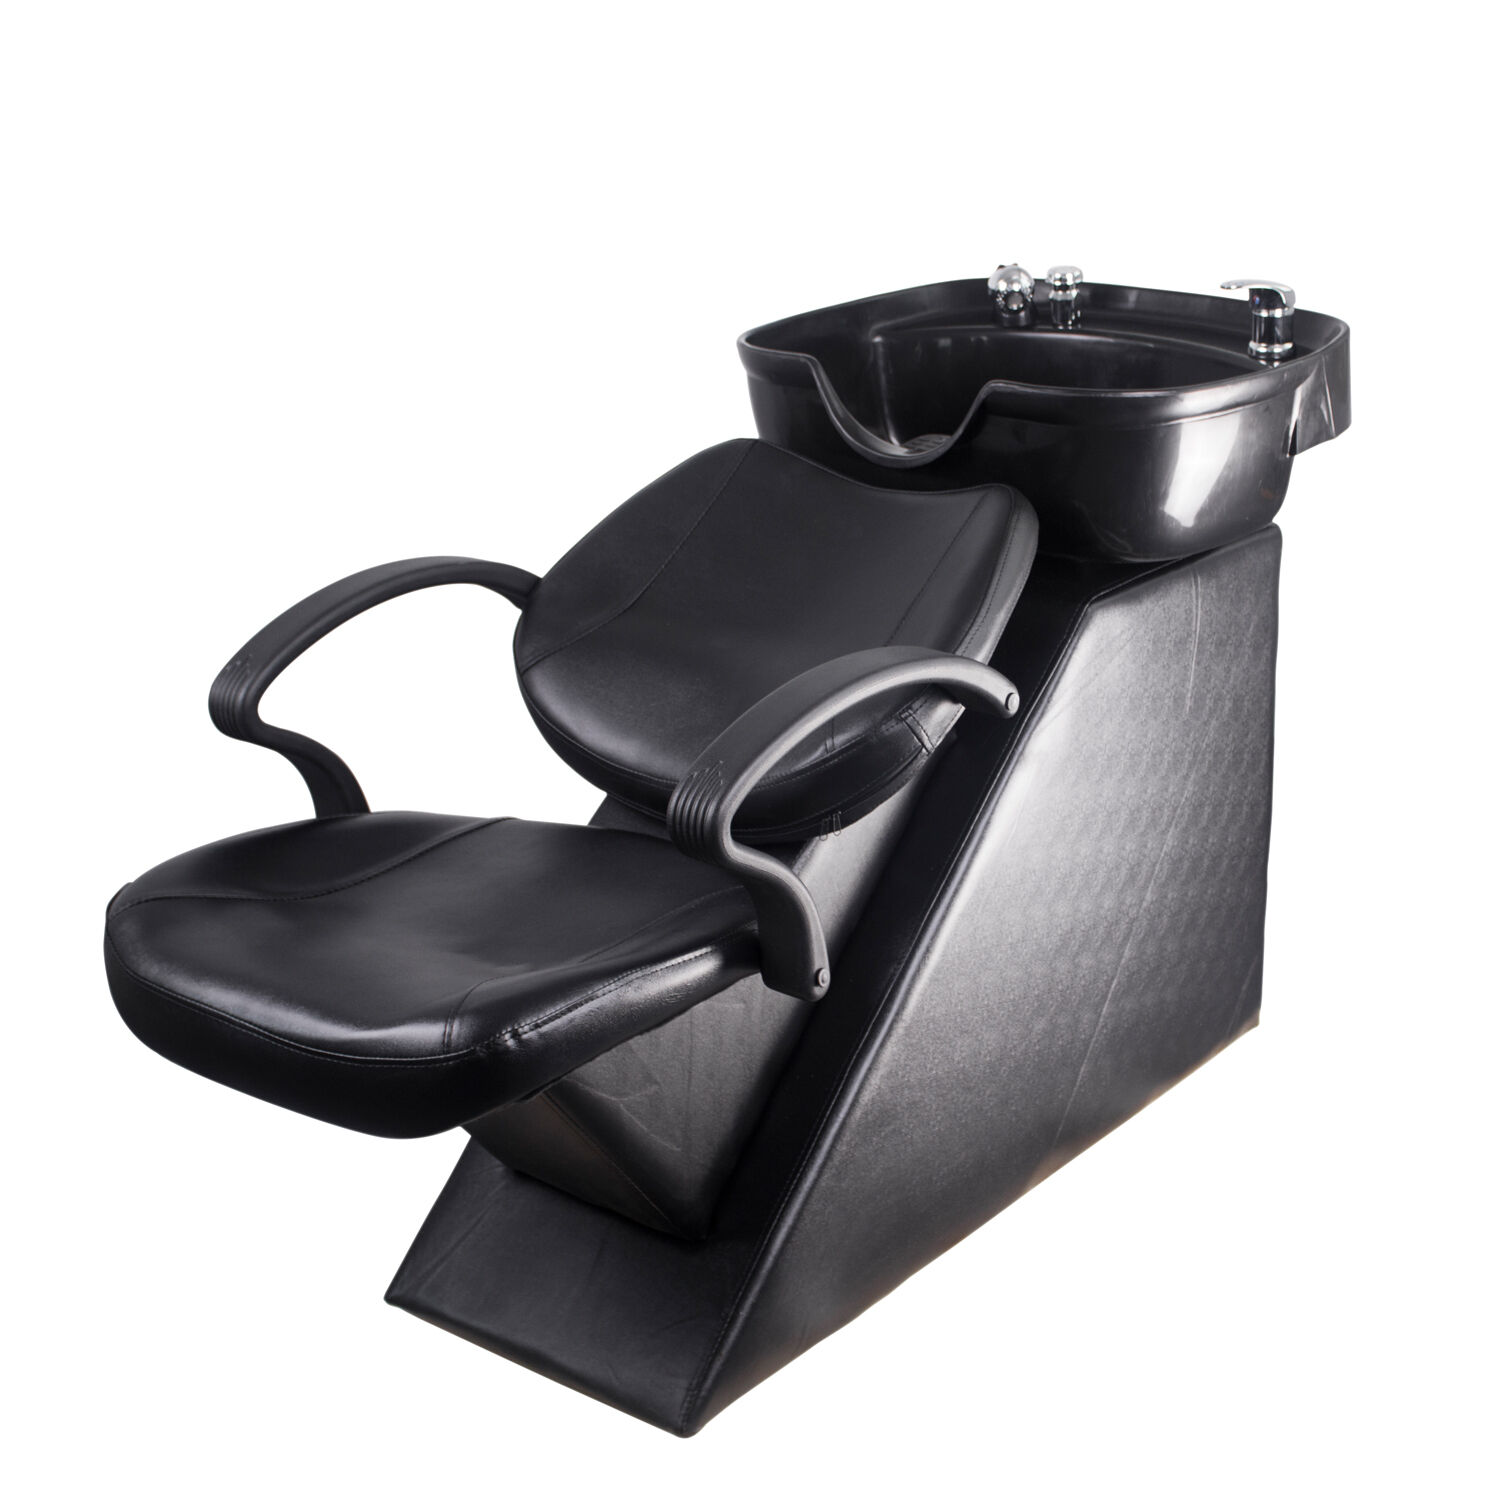 Backwash Barber Shampoo Chair Bowl Sink Salon Beauty Equipment